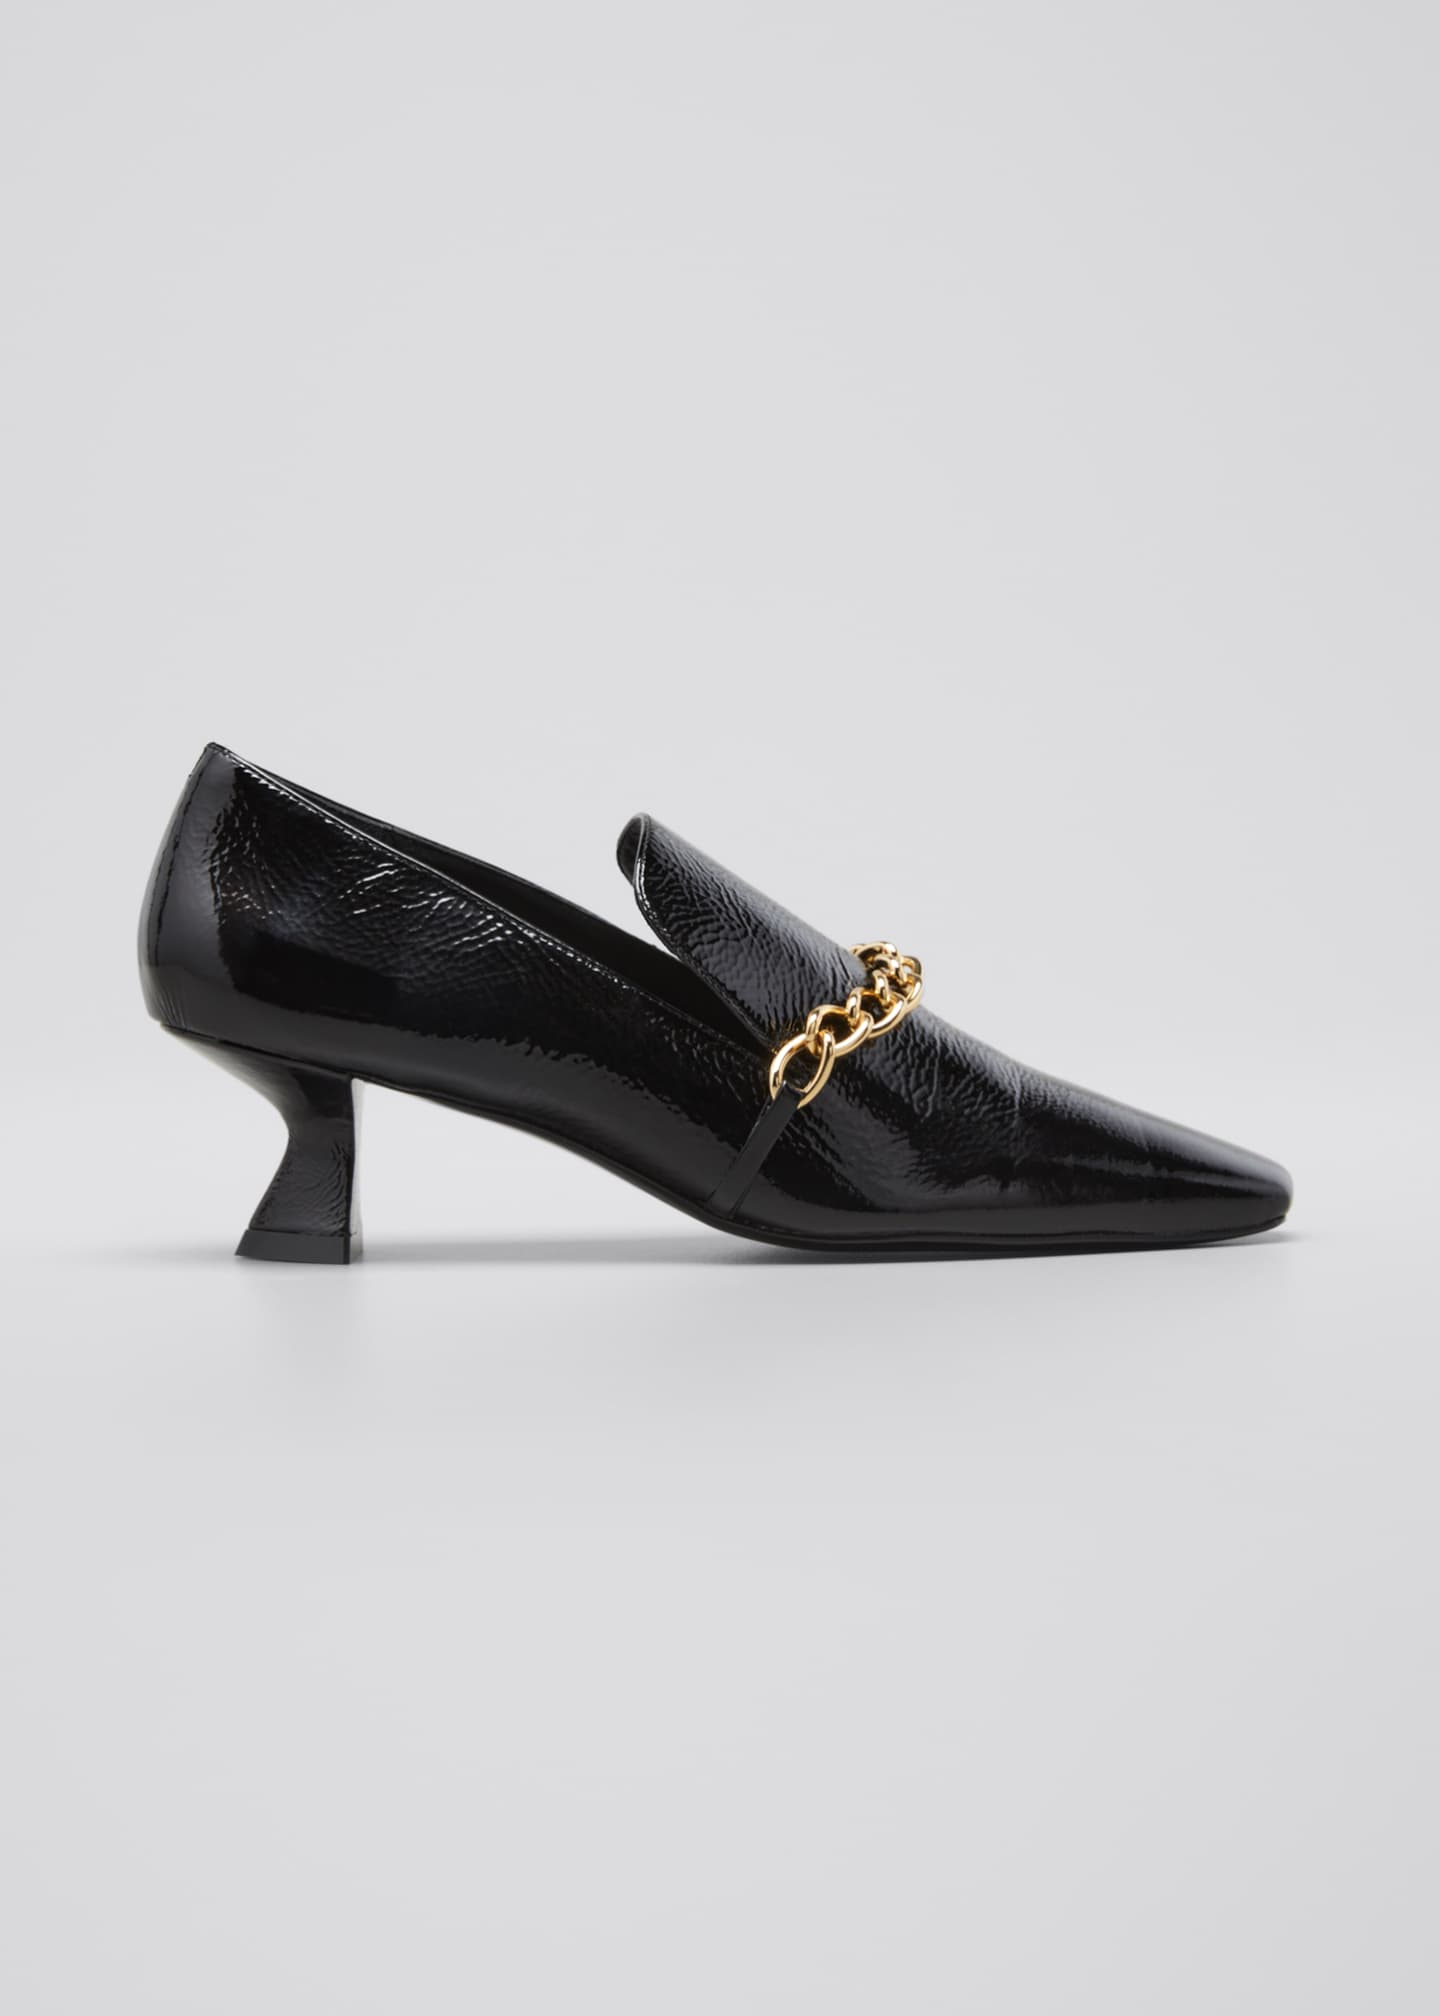 Harriet Chain Loafer Pumps